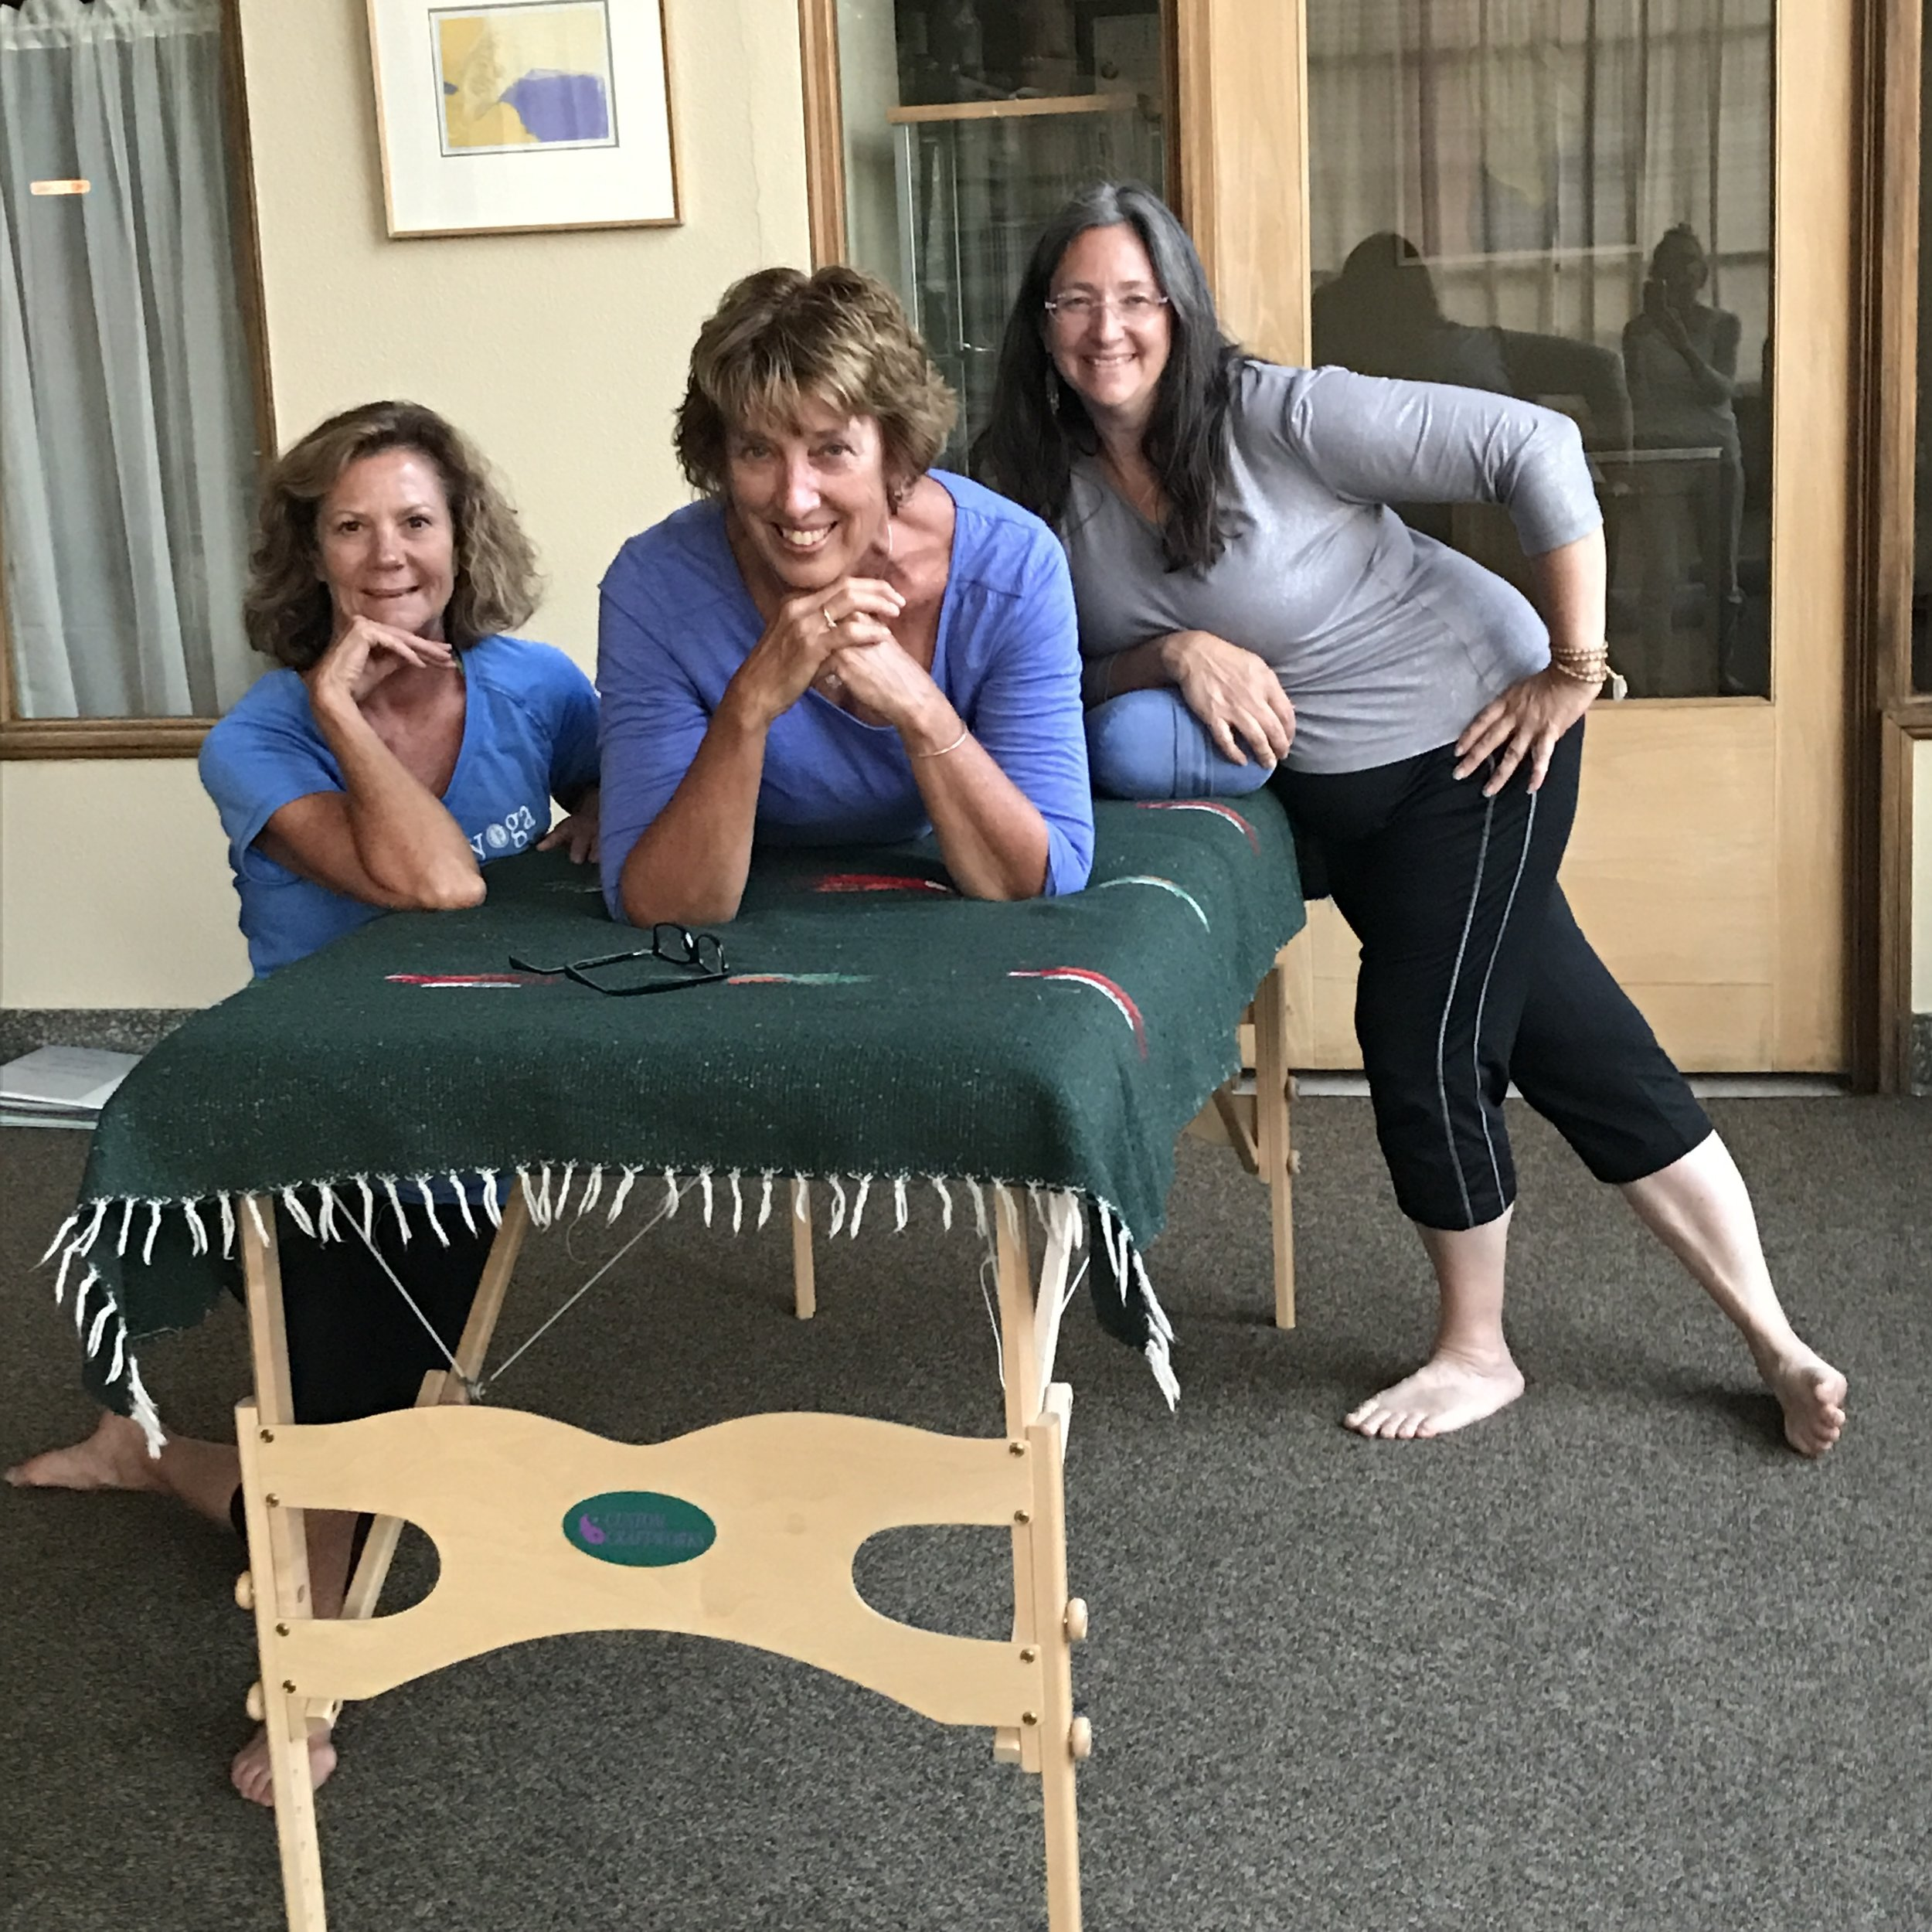 Past grads after Yoga on the Table- Sue DeBord; Mary Steinbeck; Robin Bourjaily, All from Iowa.